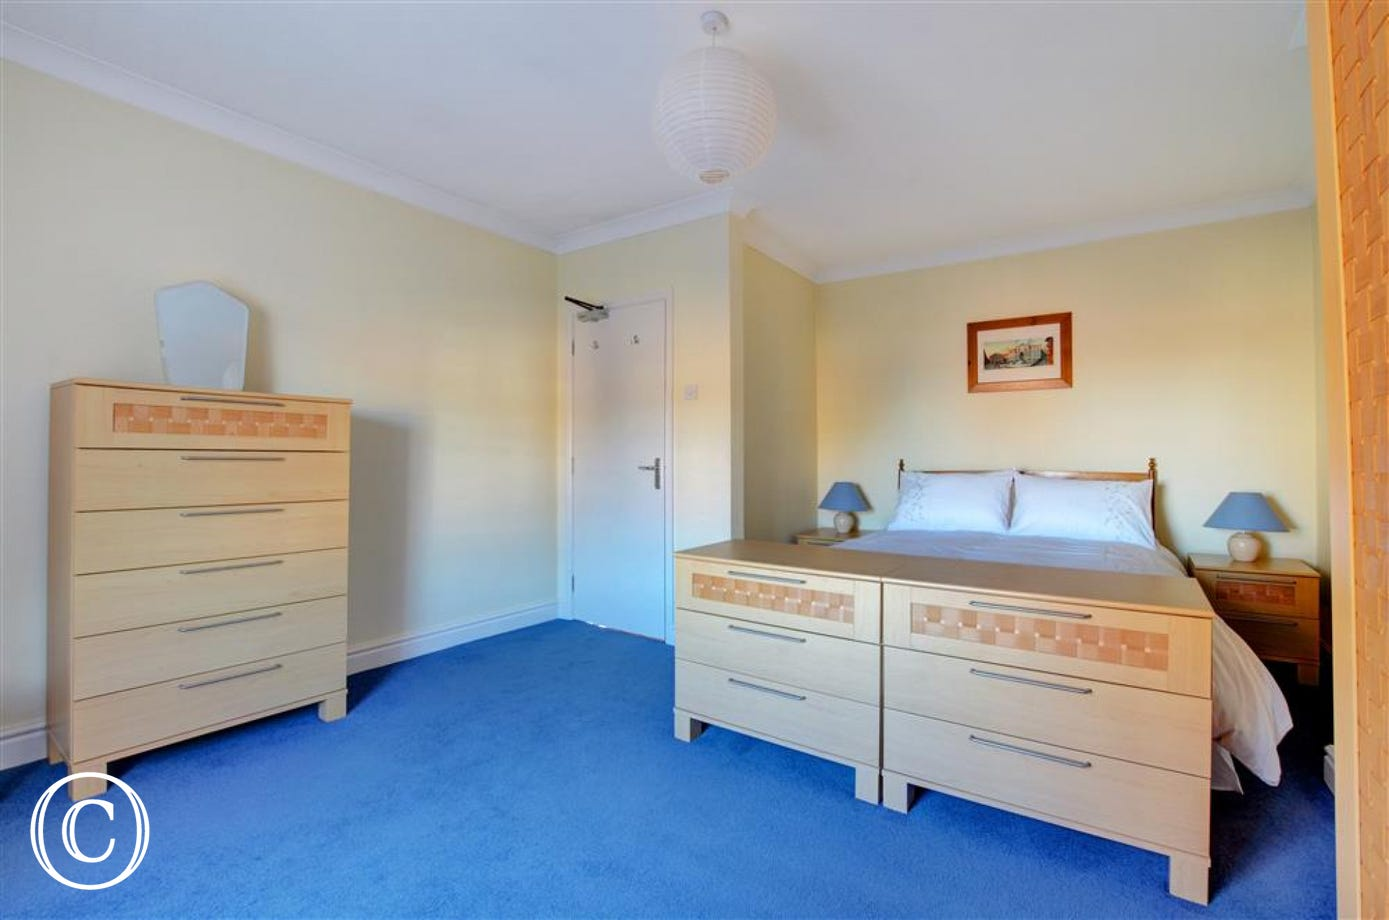 Large bedroom with ample storage